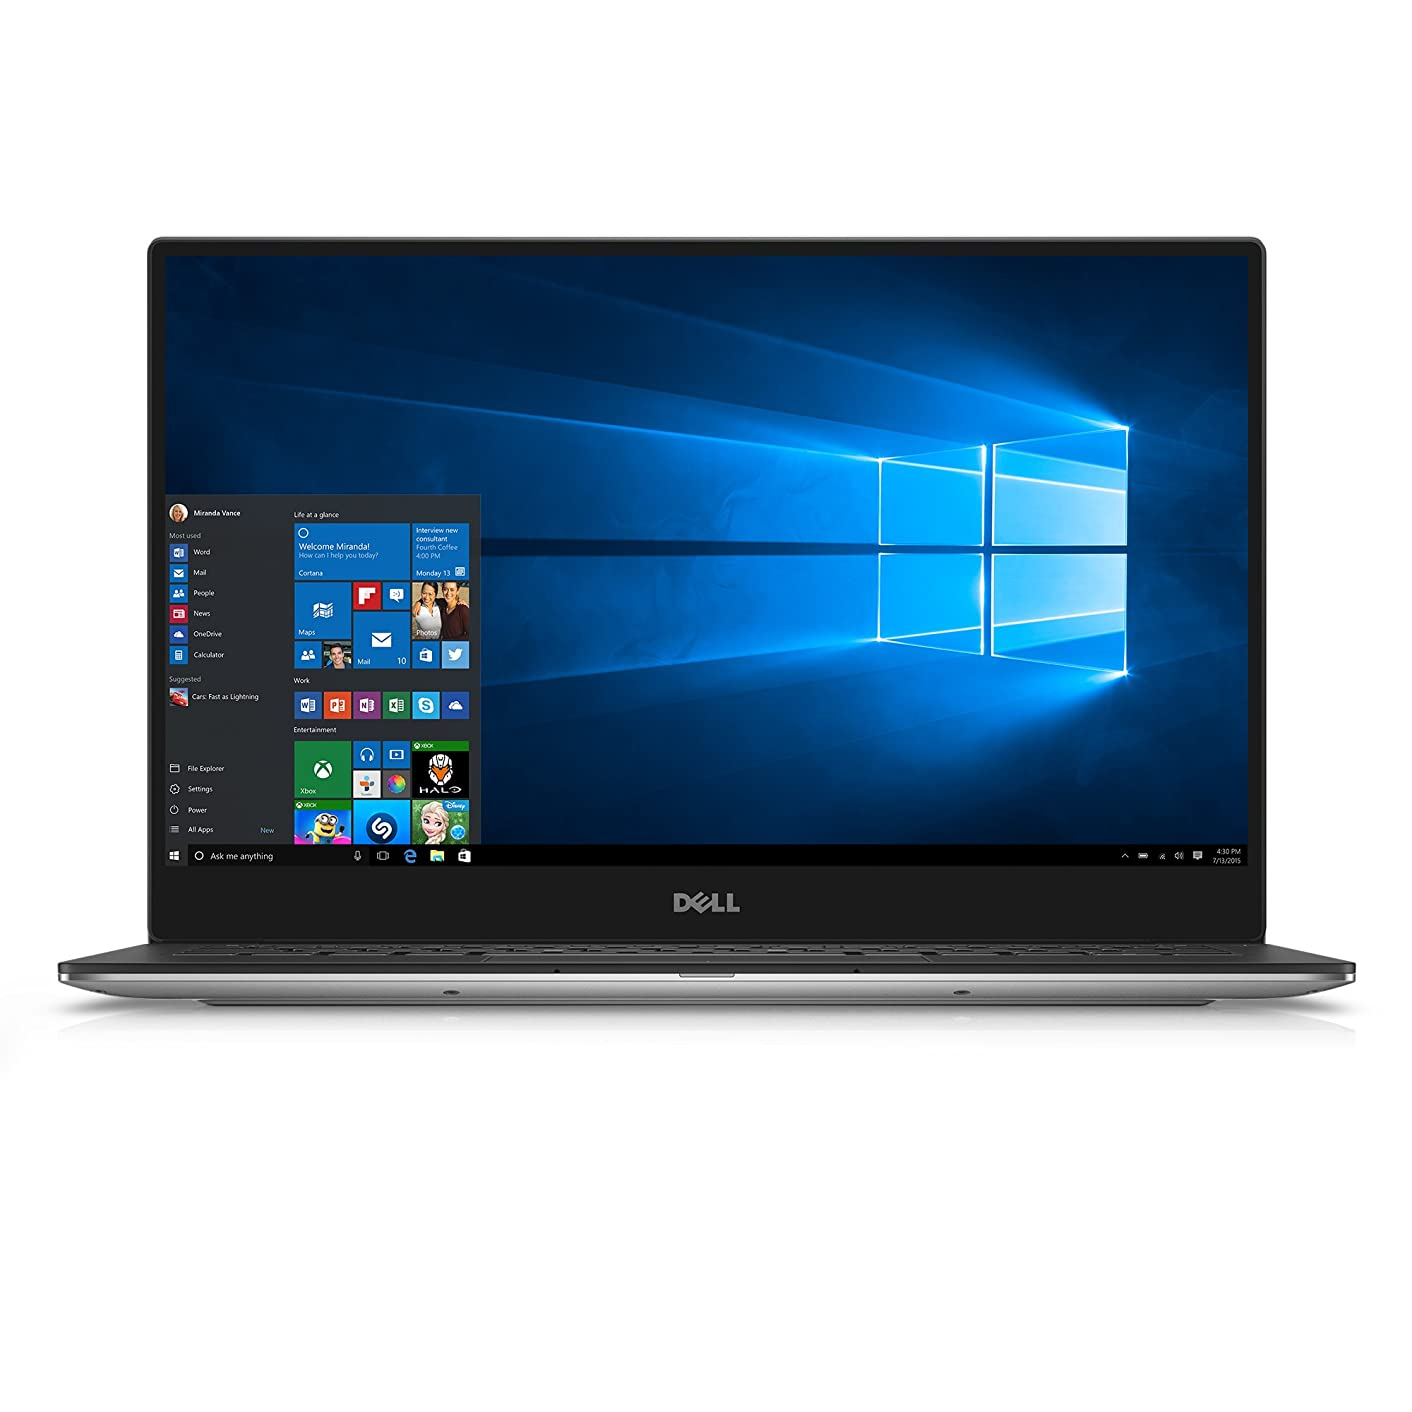 Dell XPS9360-7336SLV 13.3